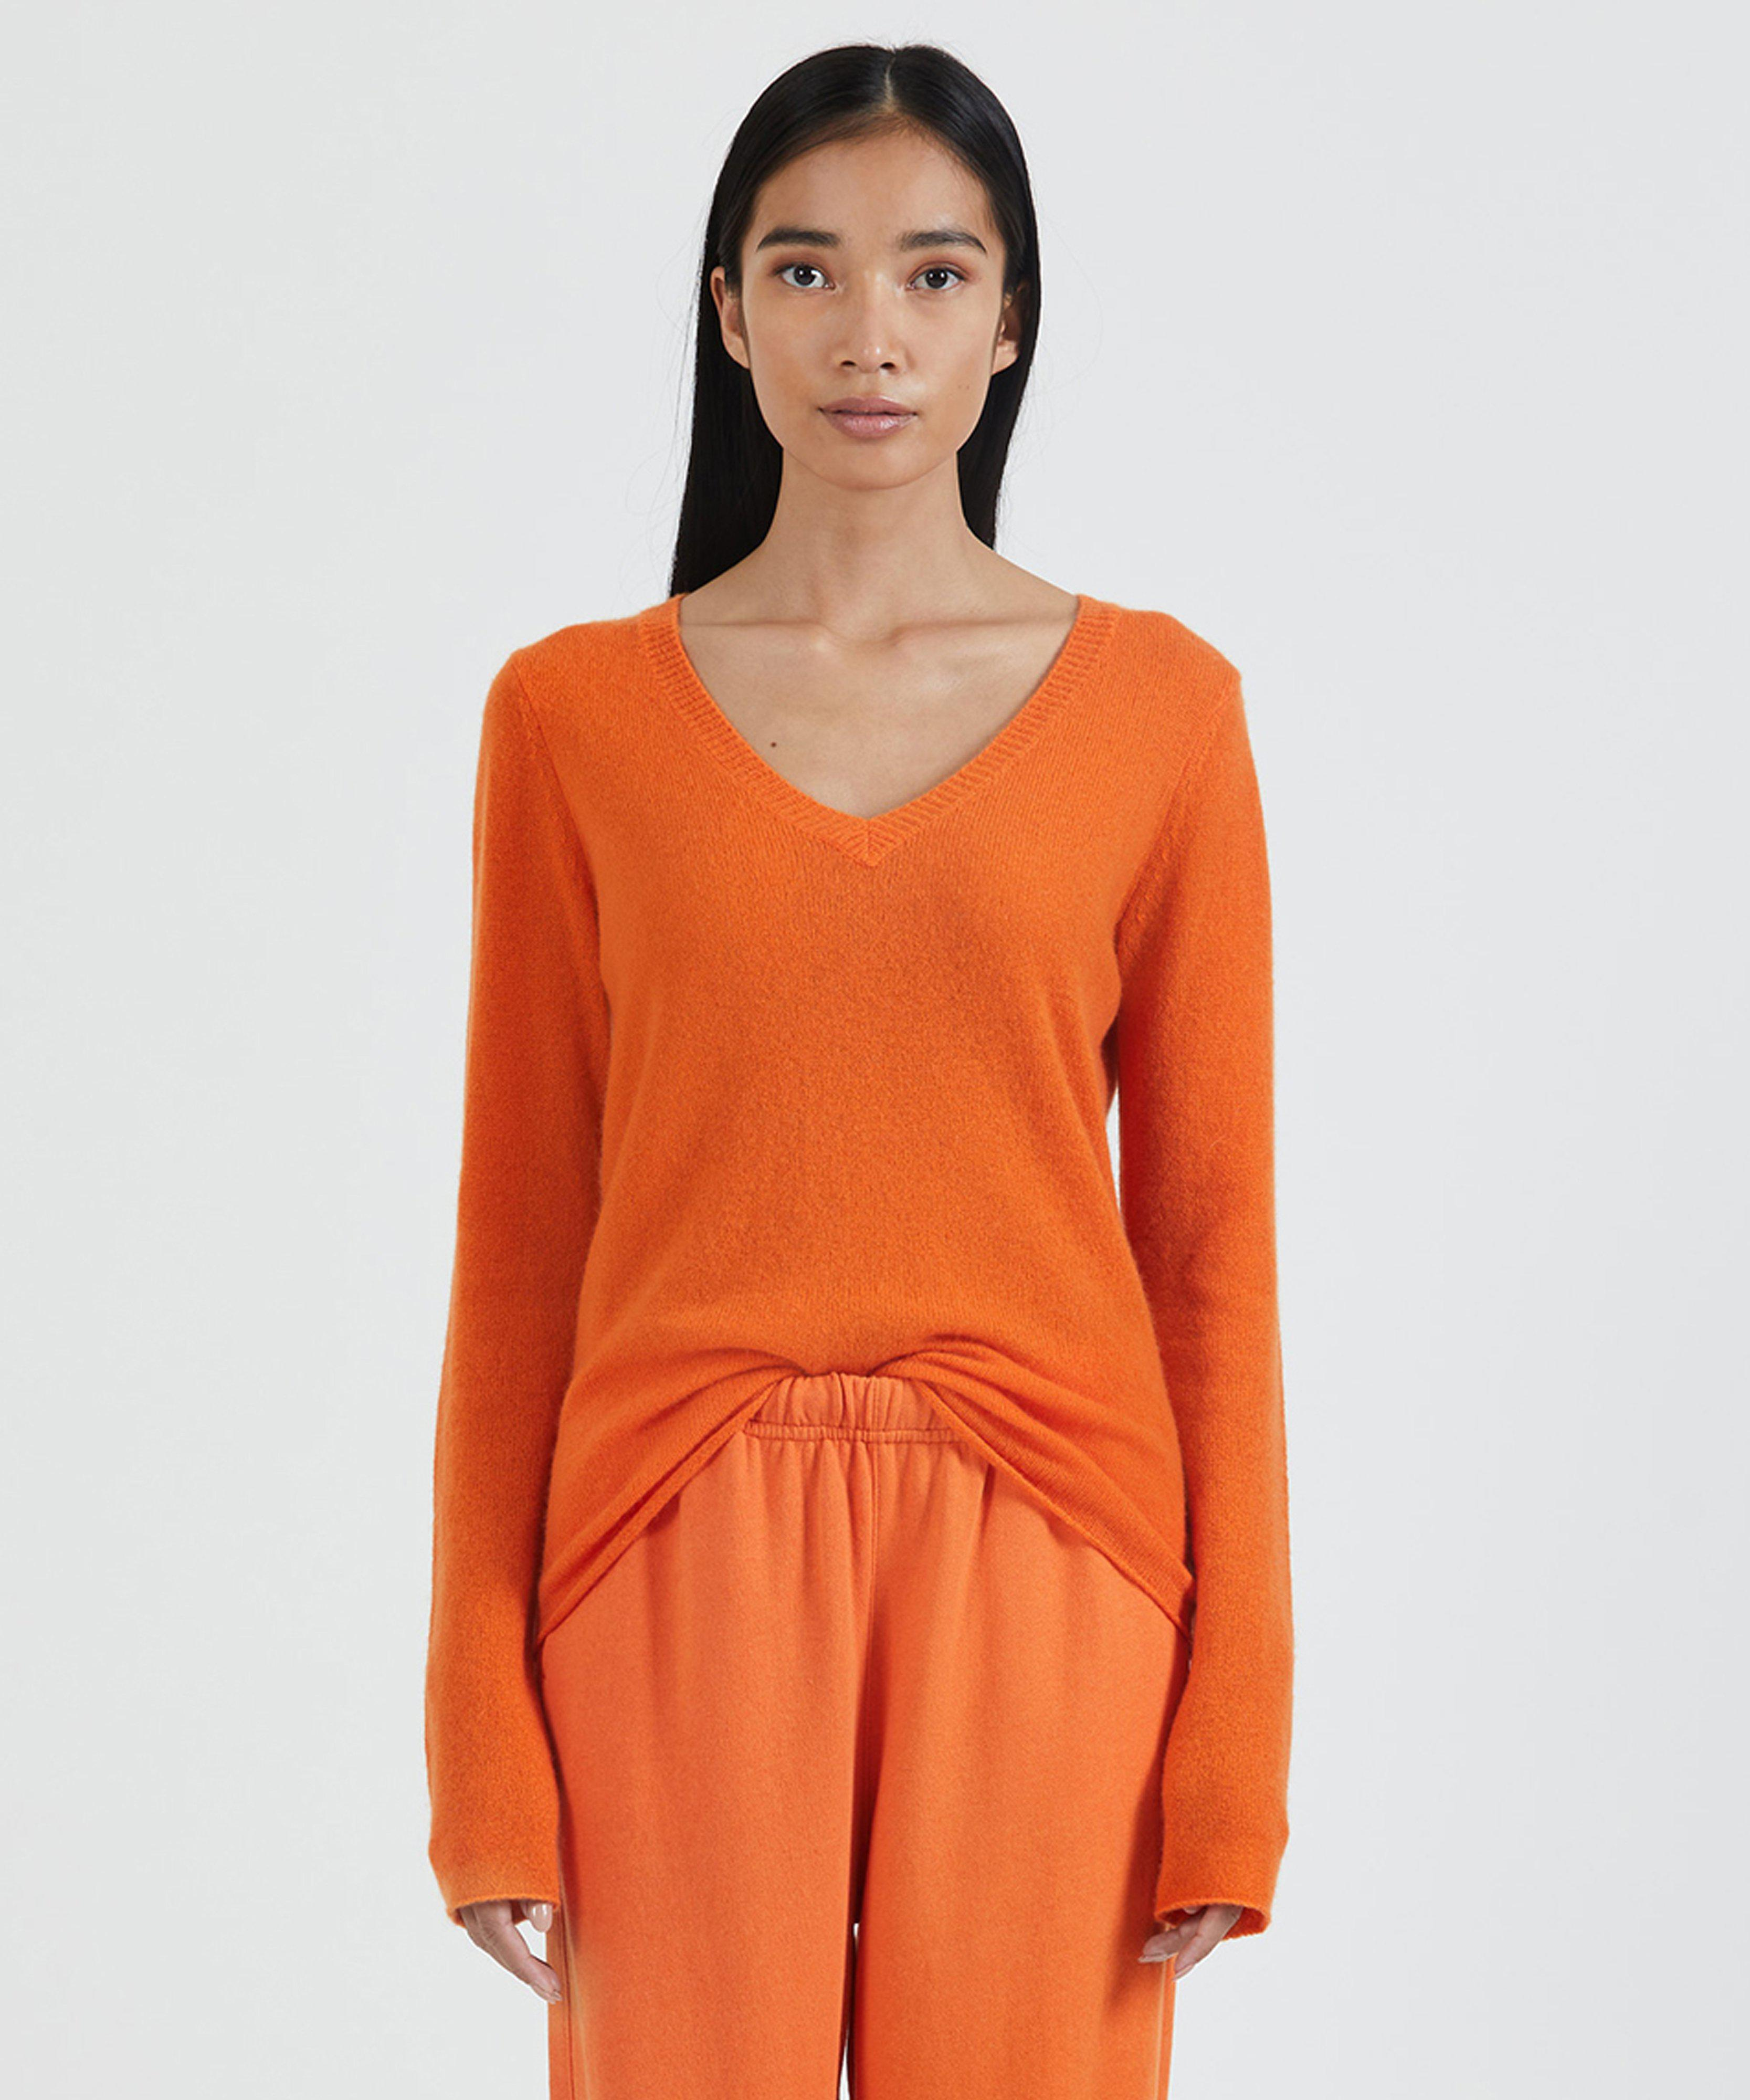 Cashmere V-Neck Sweater - Clementine